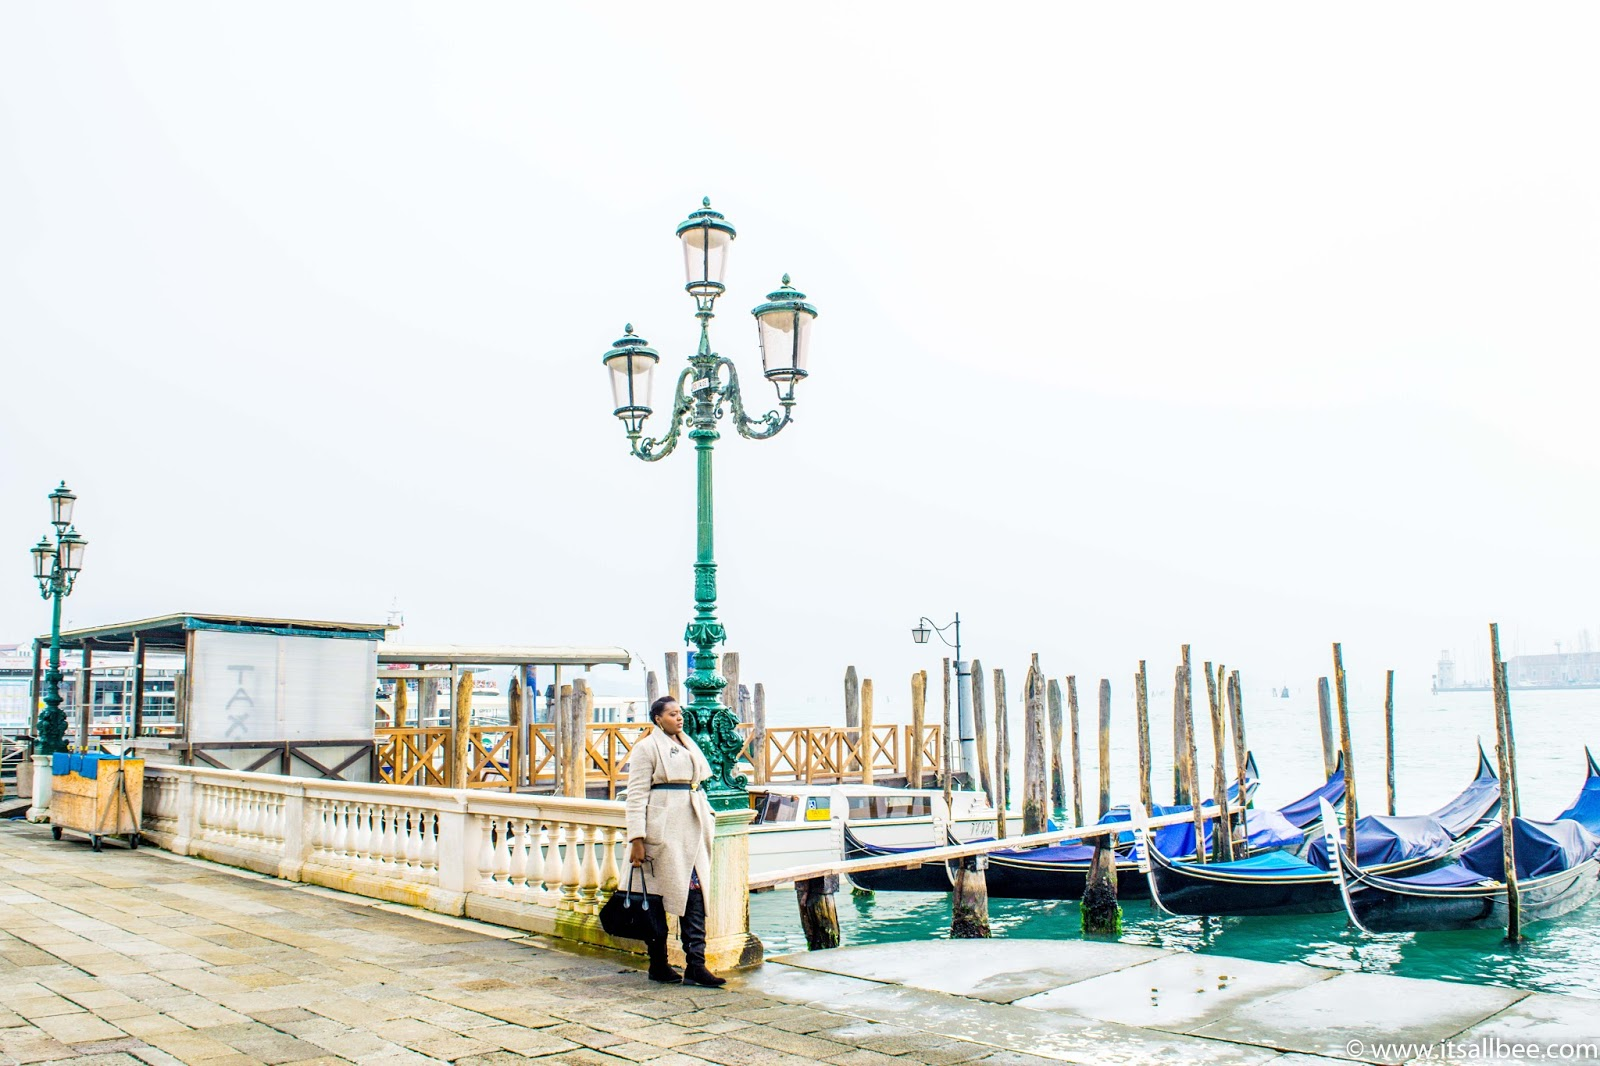 Venice Winter | Venice In November